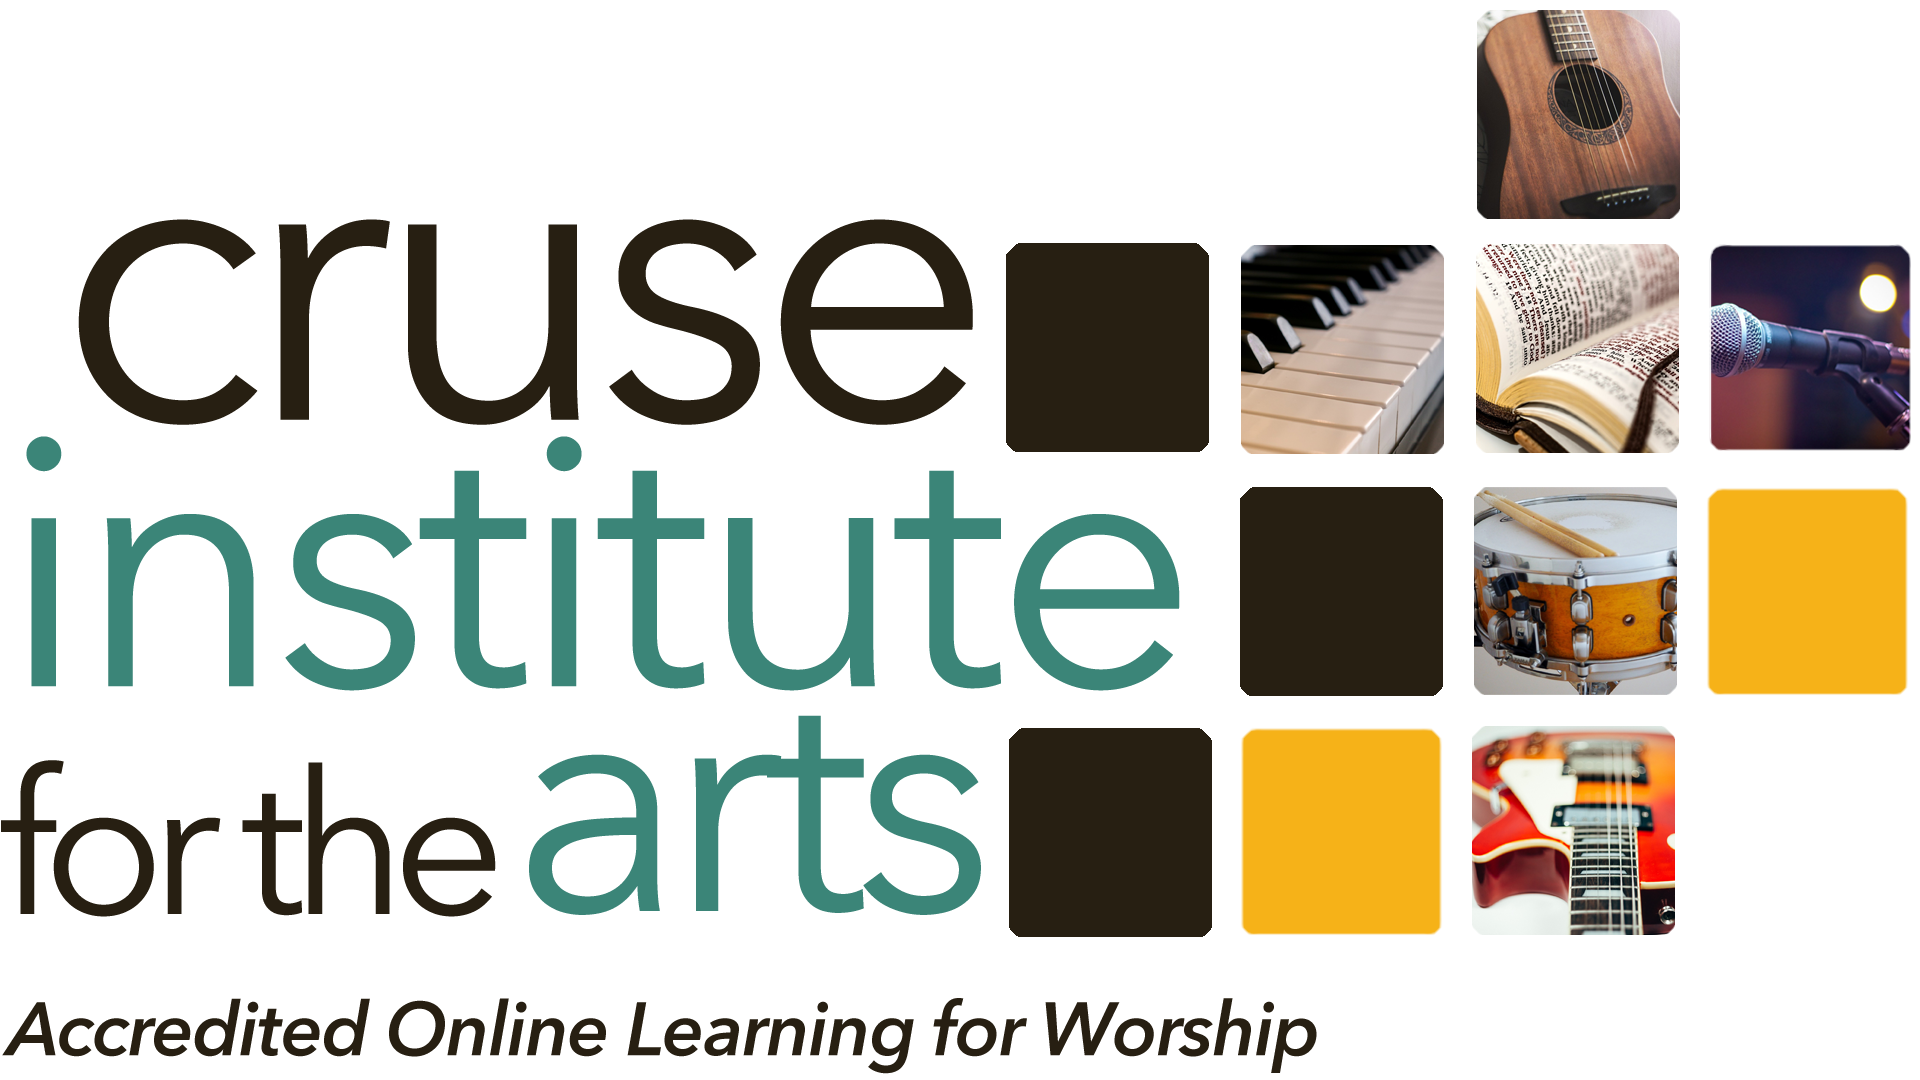 Cruse Institute for the Arts